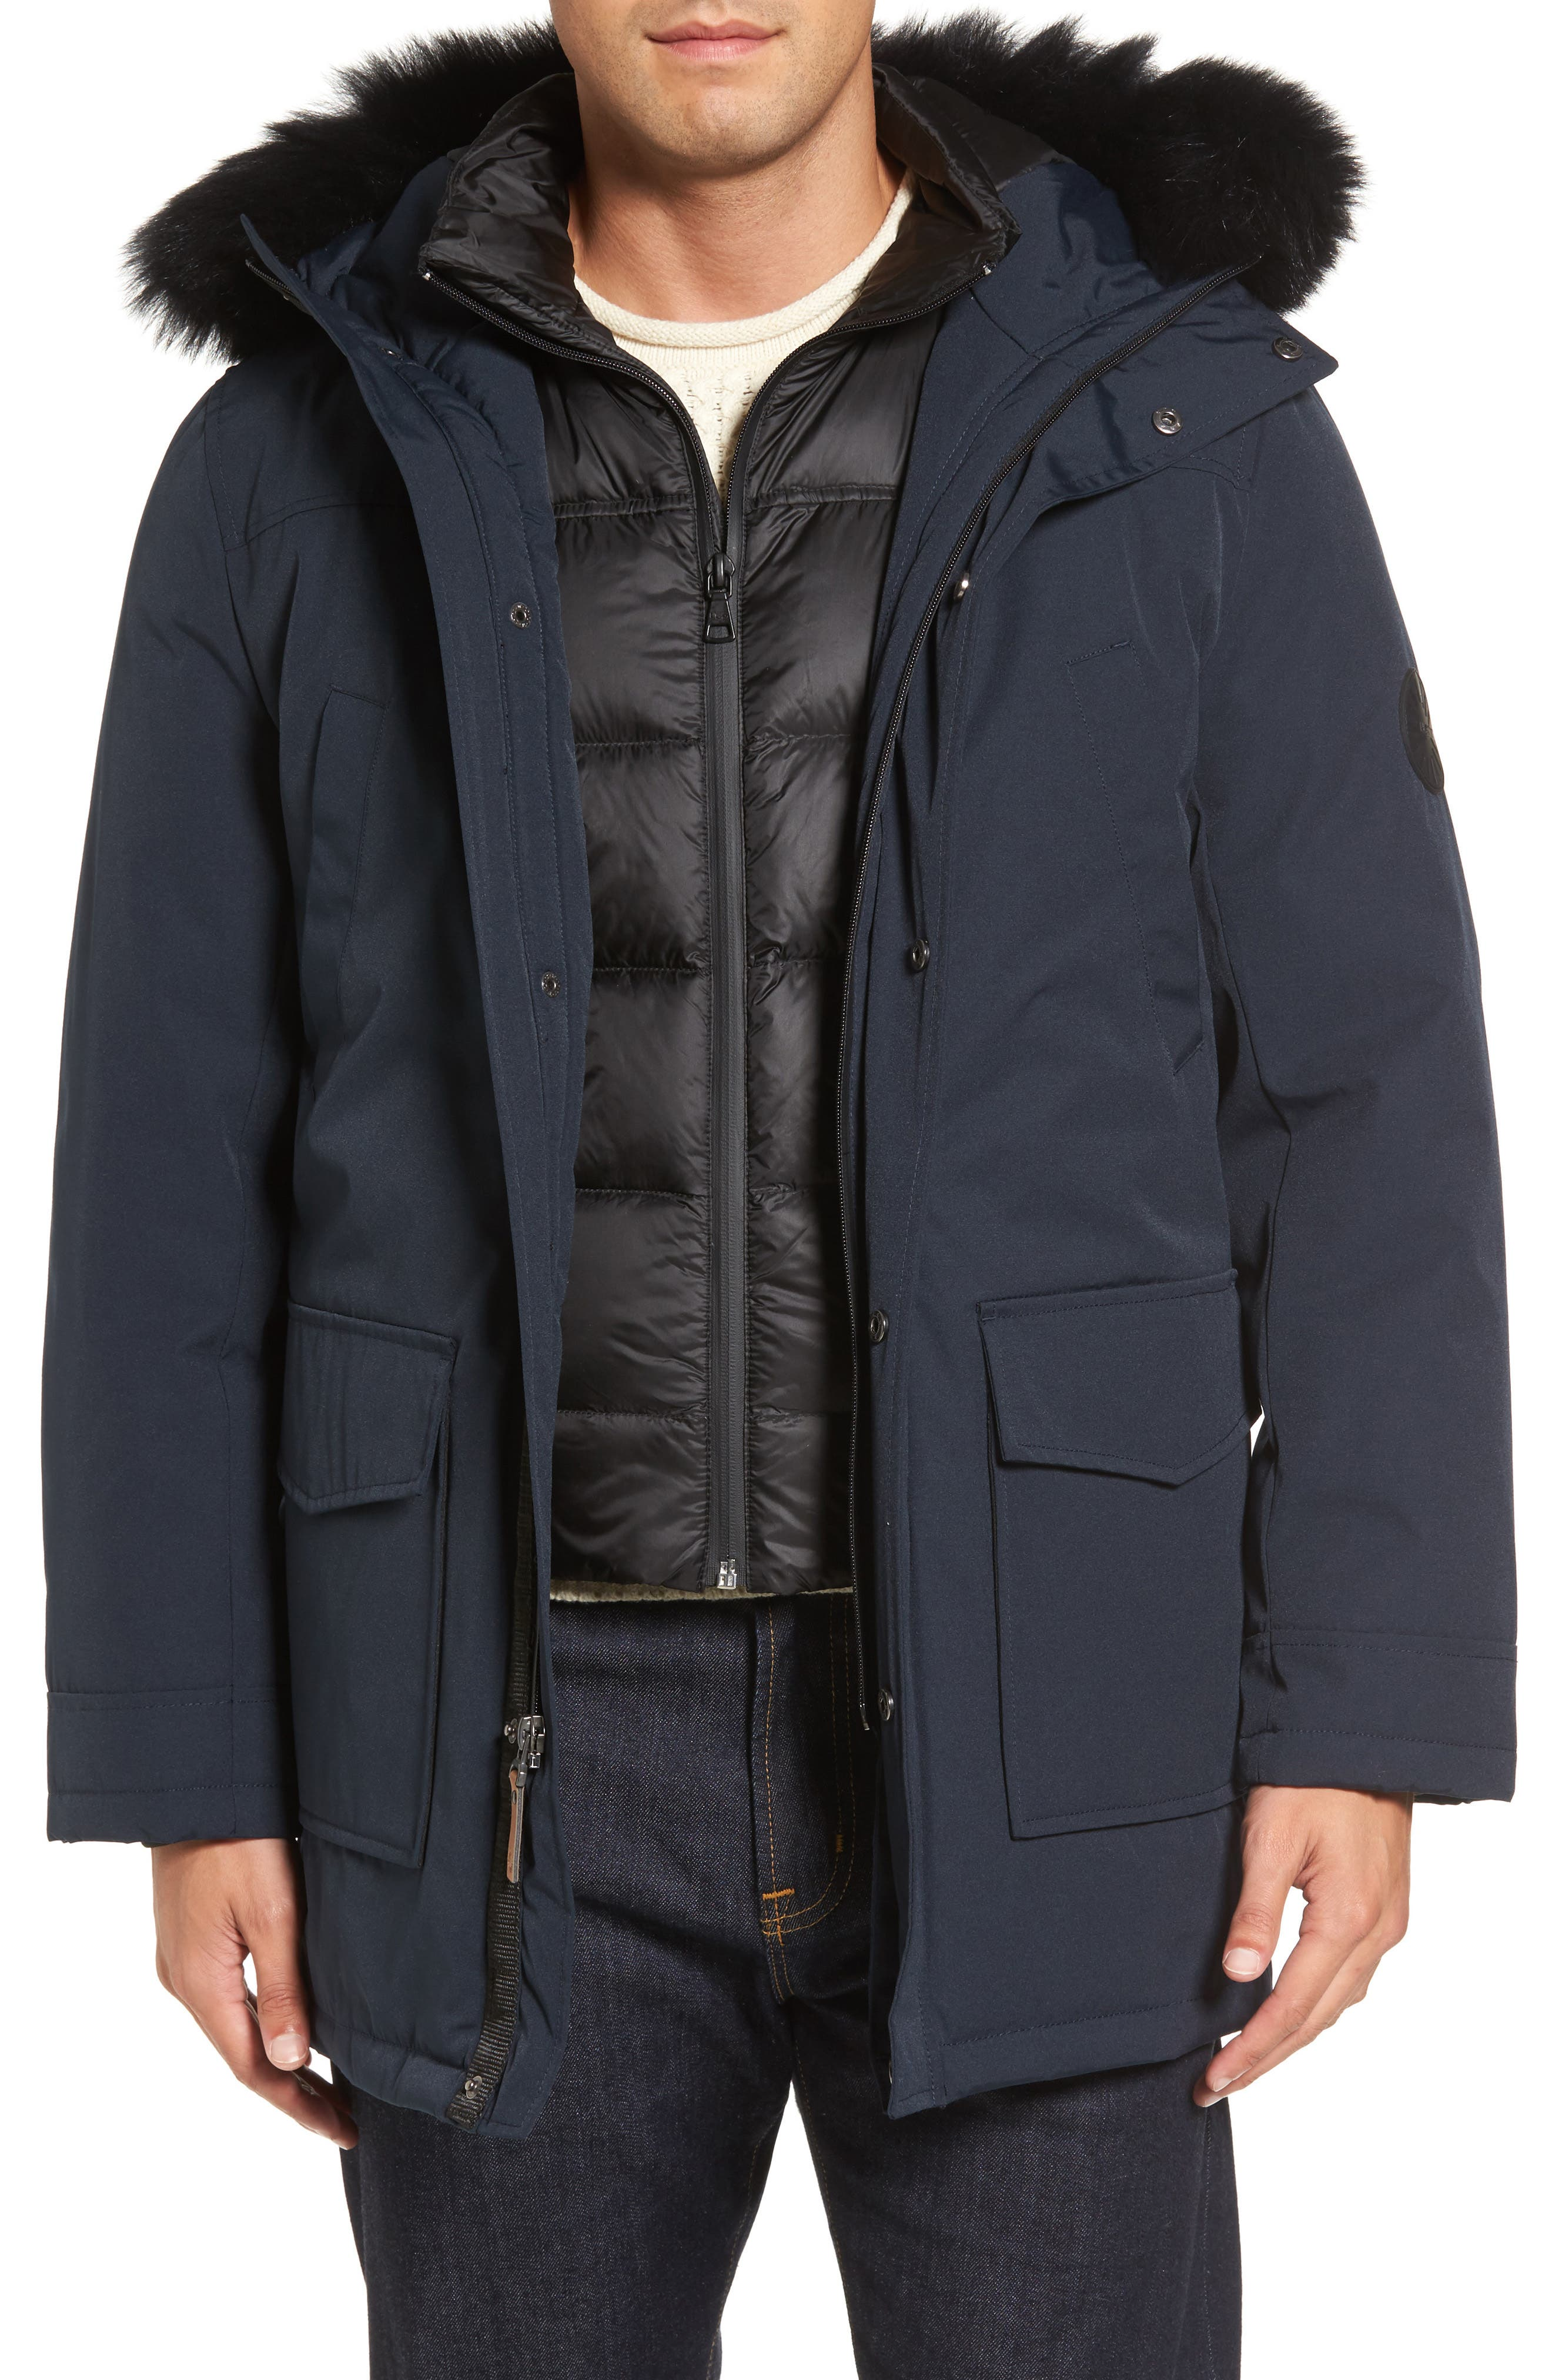 Butte Water-Resistant Down Parka with Genuine Shearling Trim,                             Main thumbnail 1, color,                             001